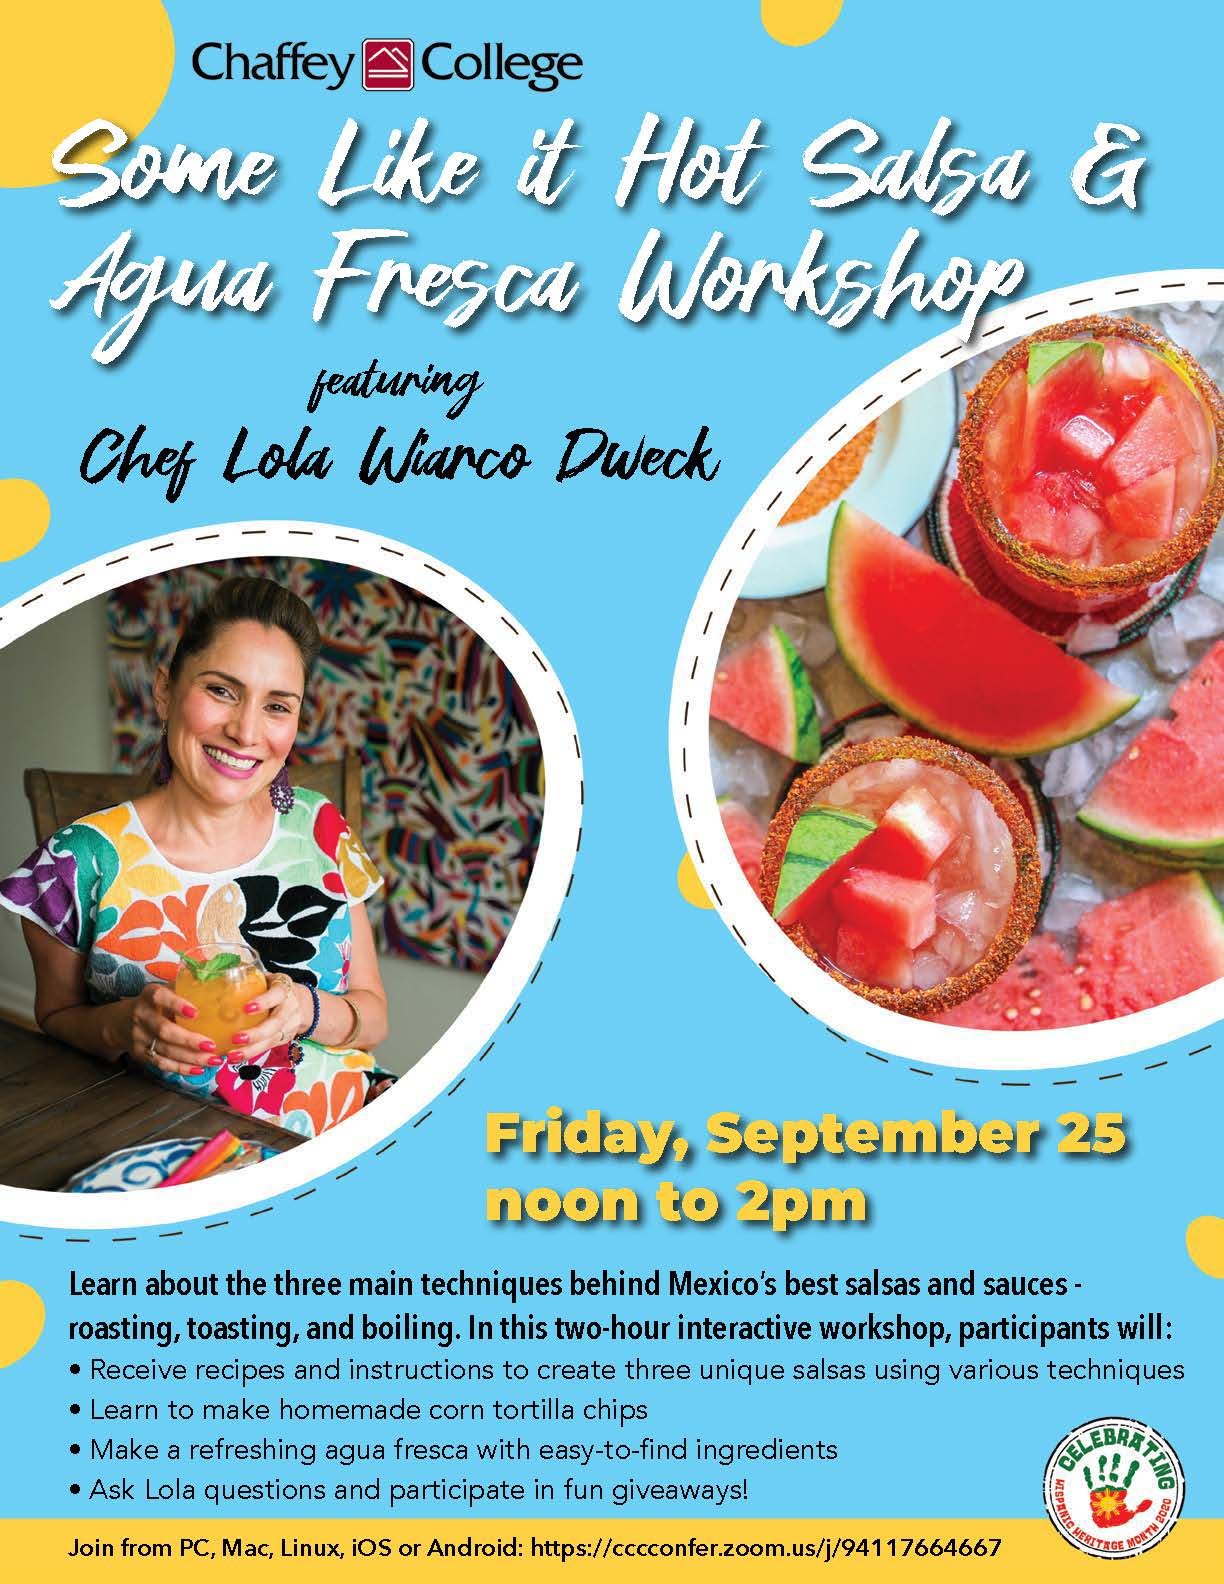 Some Like it Hot Salsa & Agua Fresca Workshop